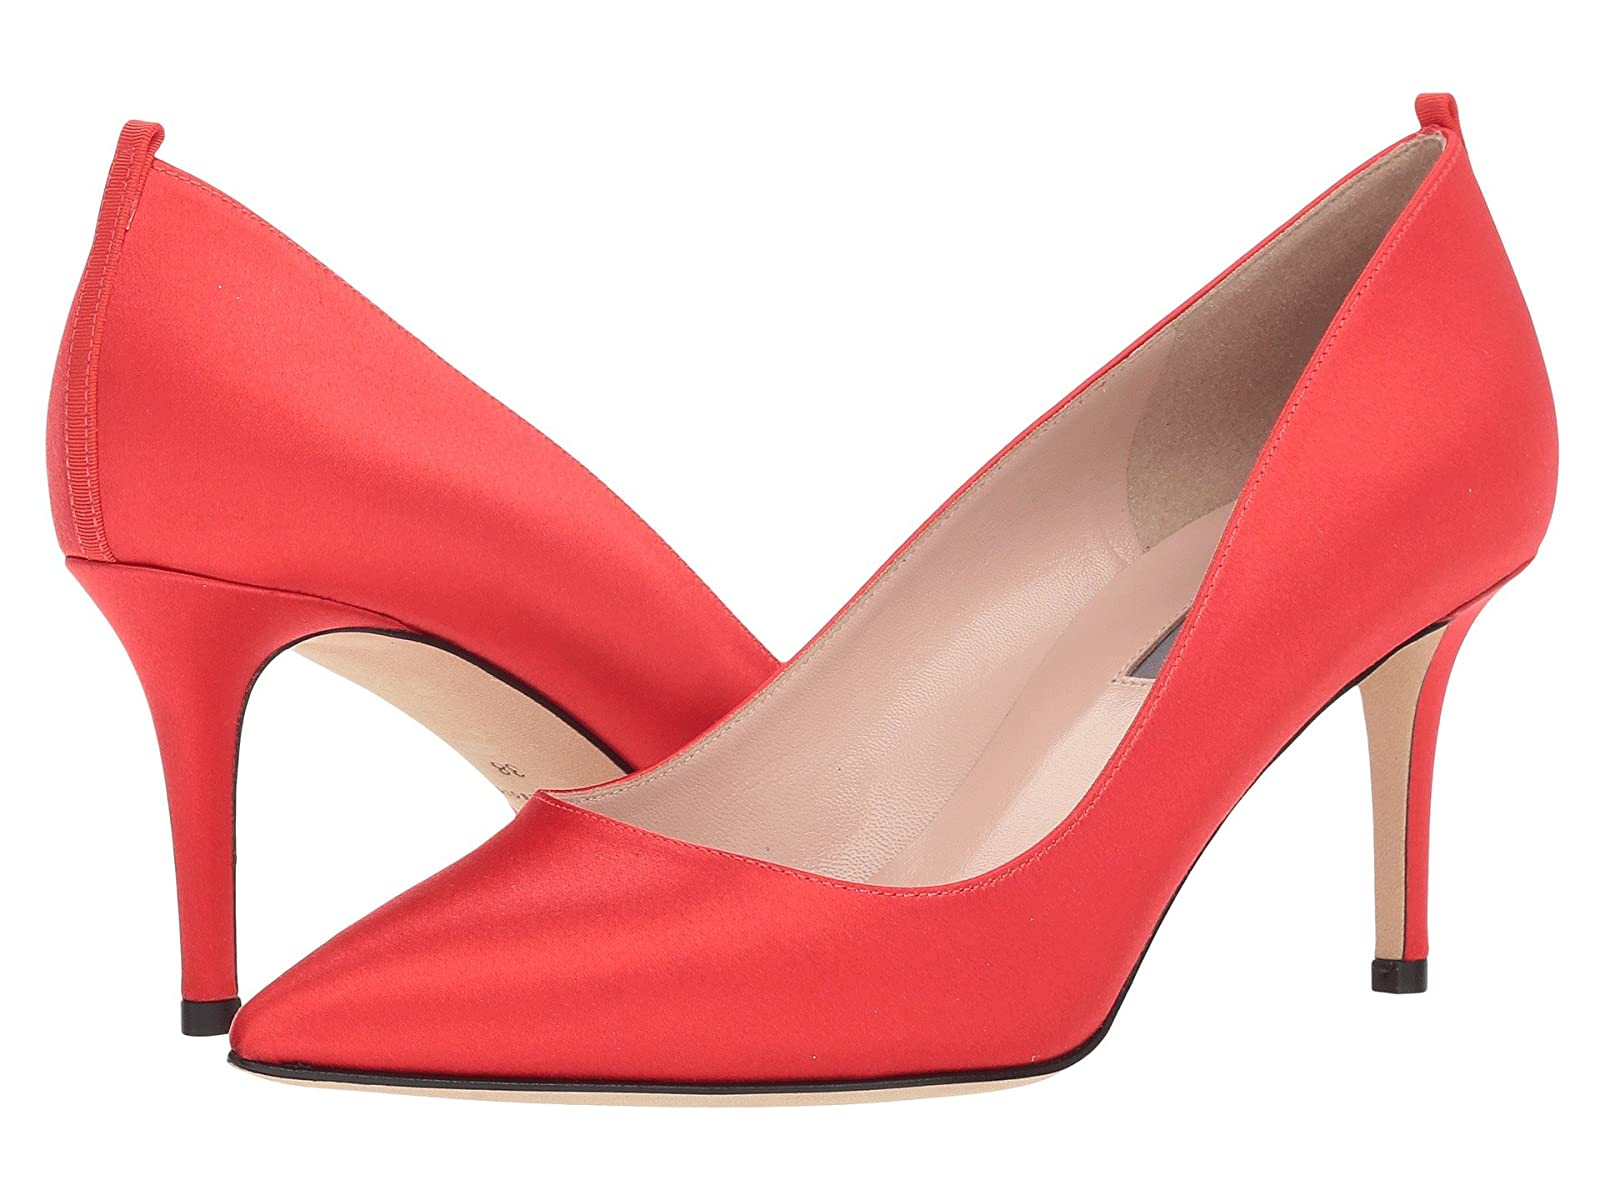 SJP by Sarah Jessica Parker Fawn 70mmAtmospheric grades have affordable shoes